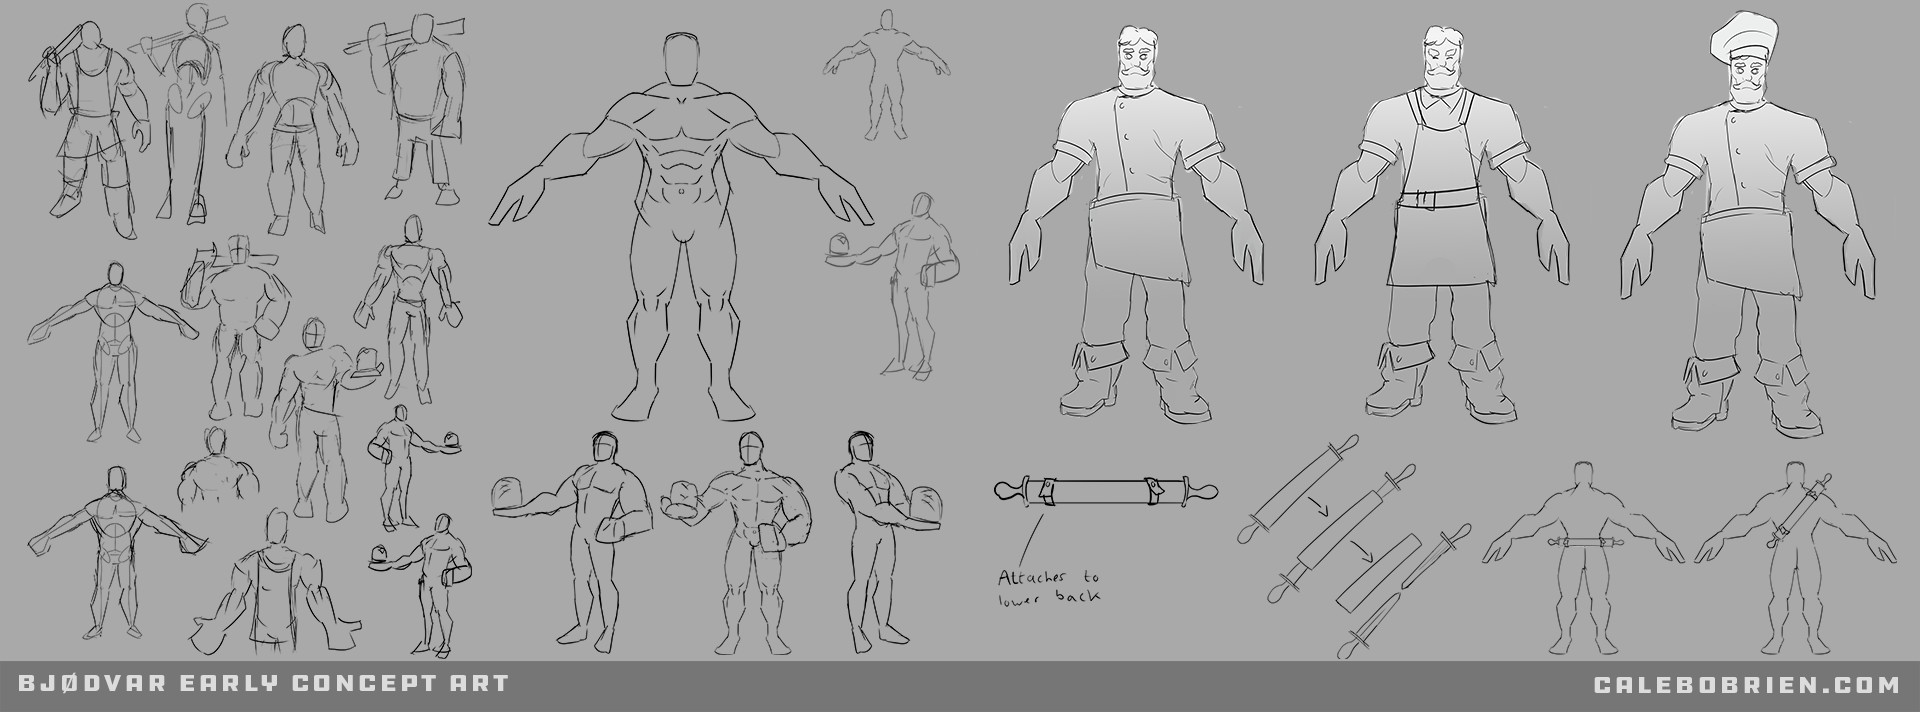 At this stage I found it useful to rough out lots of sketches in order to settle on the general direction of the design. I have since found that sketching a larger number of broad smaller thumbnails is a great starting point for designing characters.